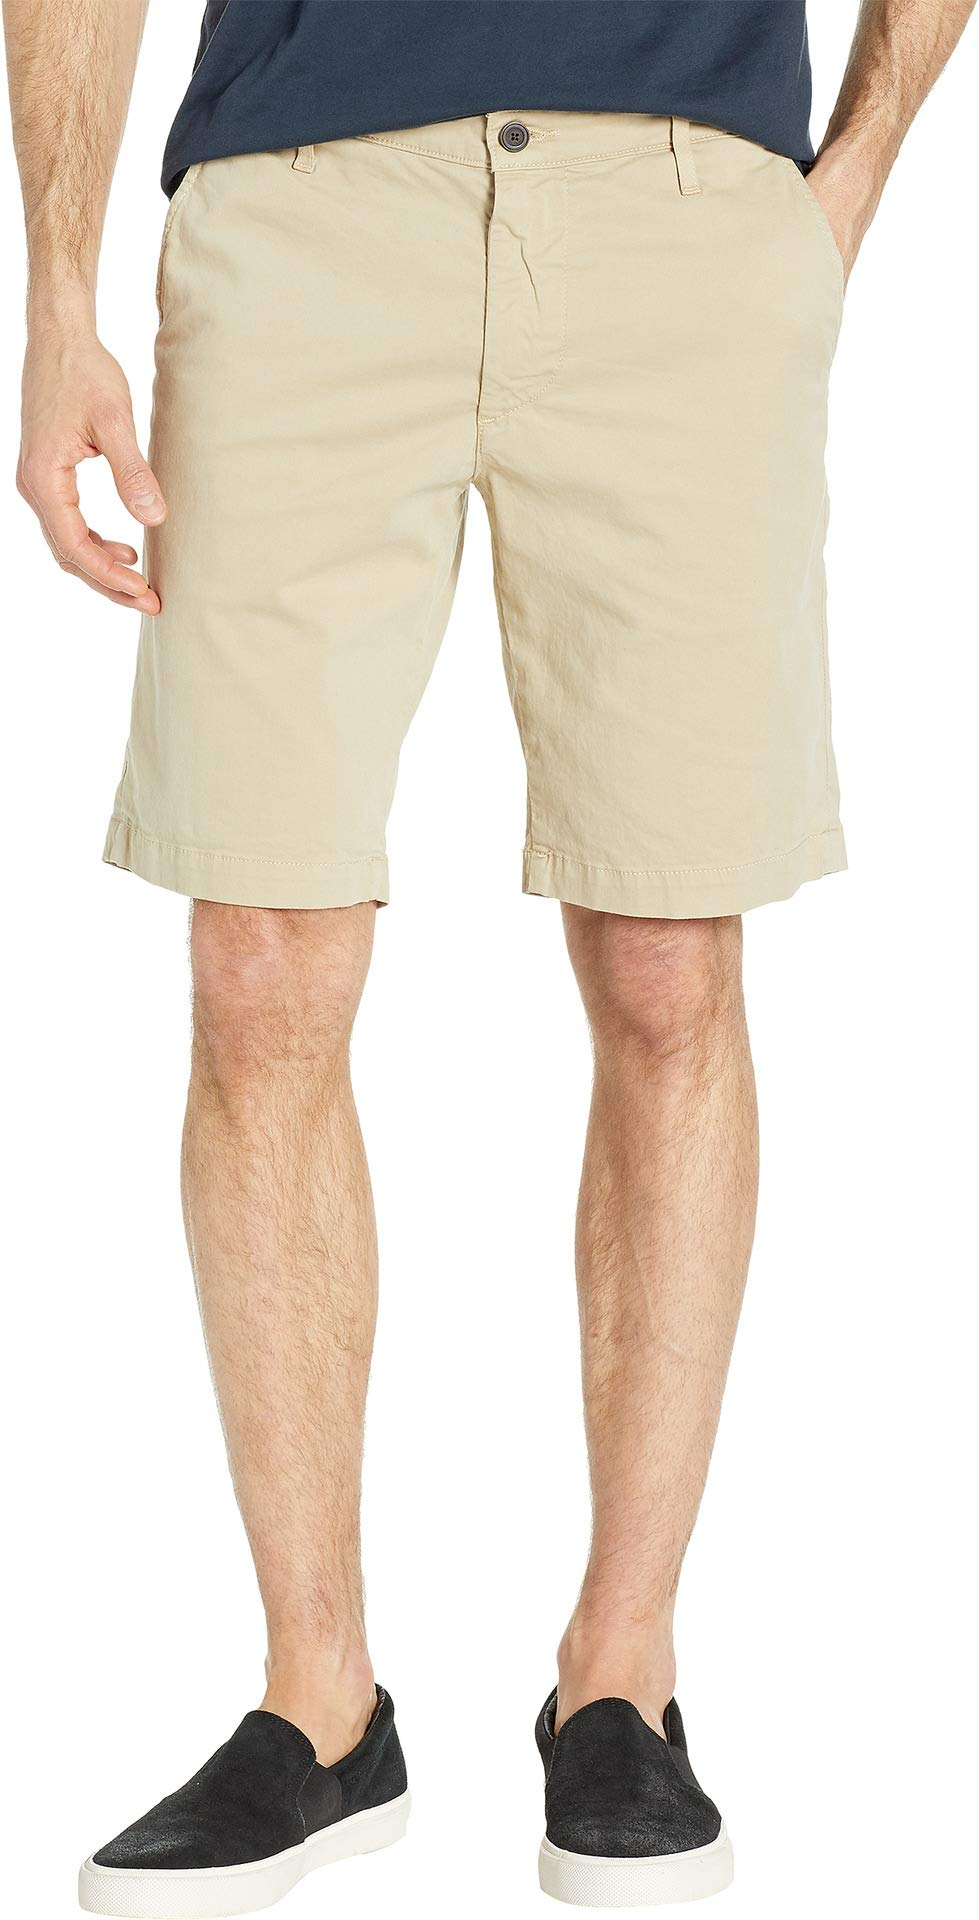 AG Adriano Goldschmied Men's Griffin Shorts in Fresh Sand Fresh Sand 34 10